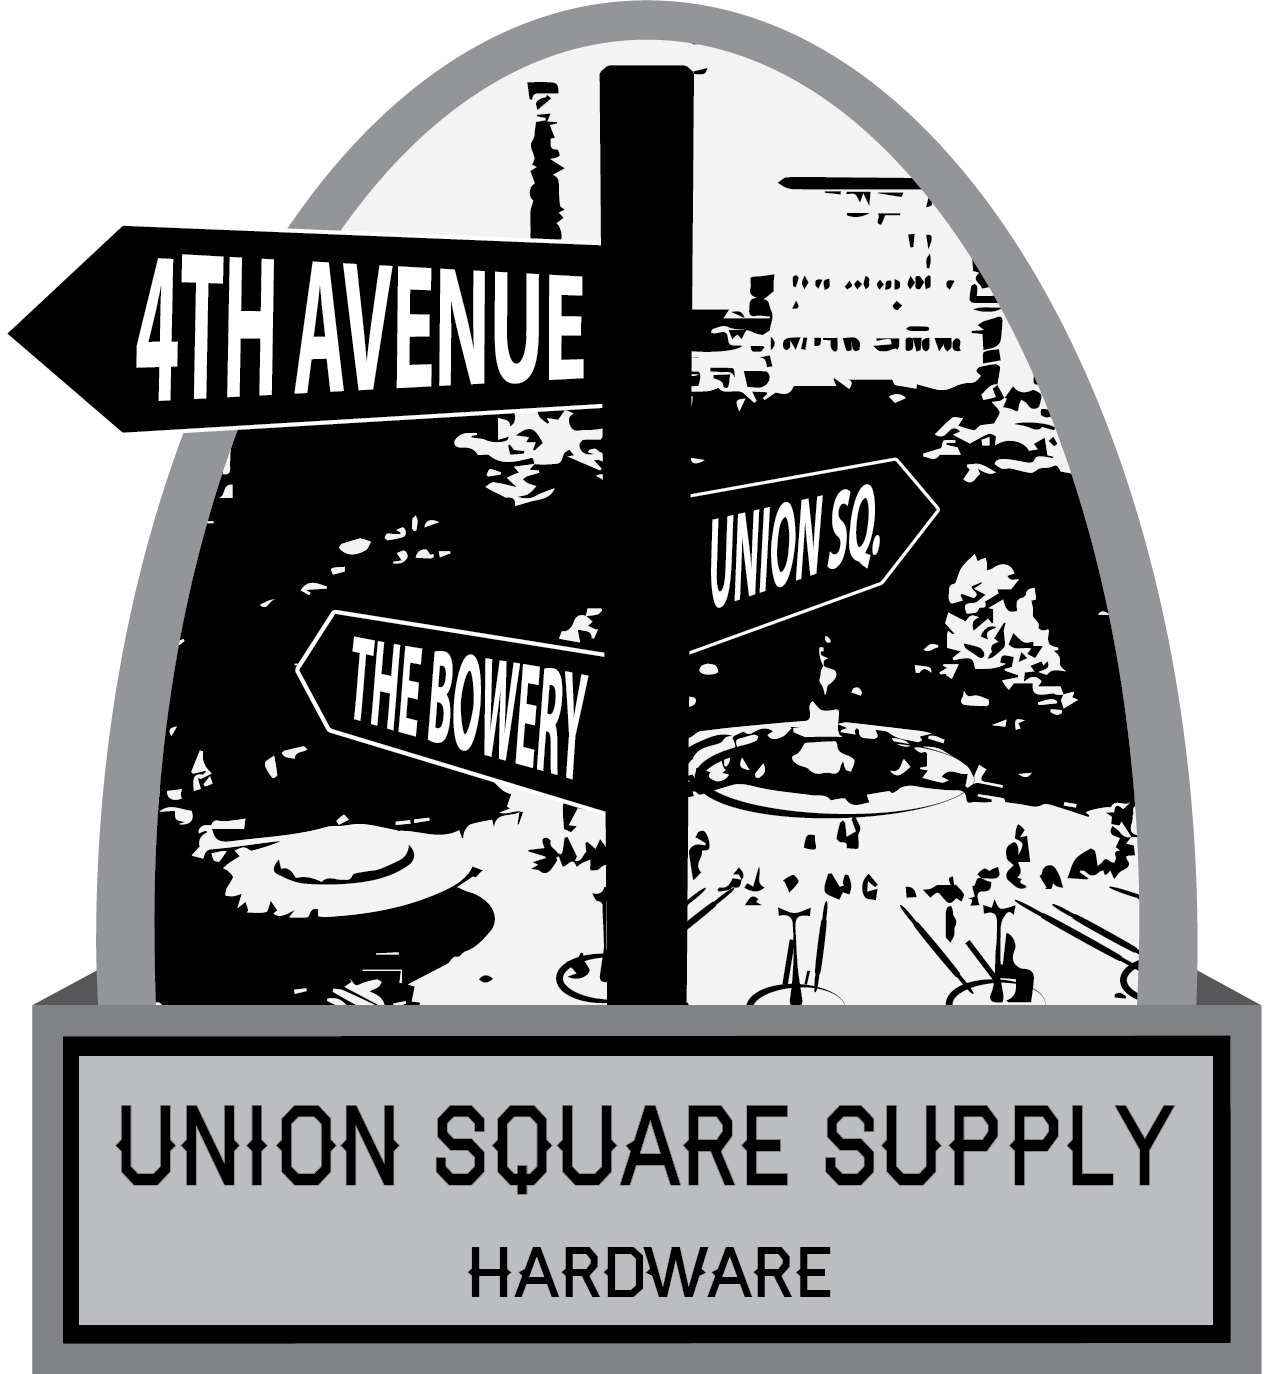 Union Square Supply